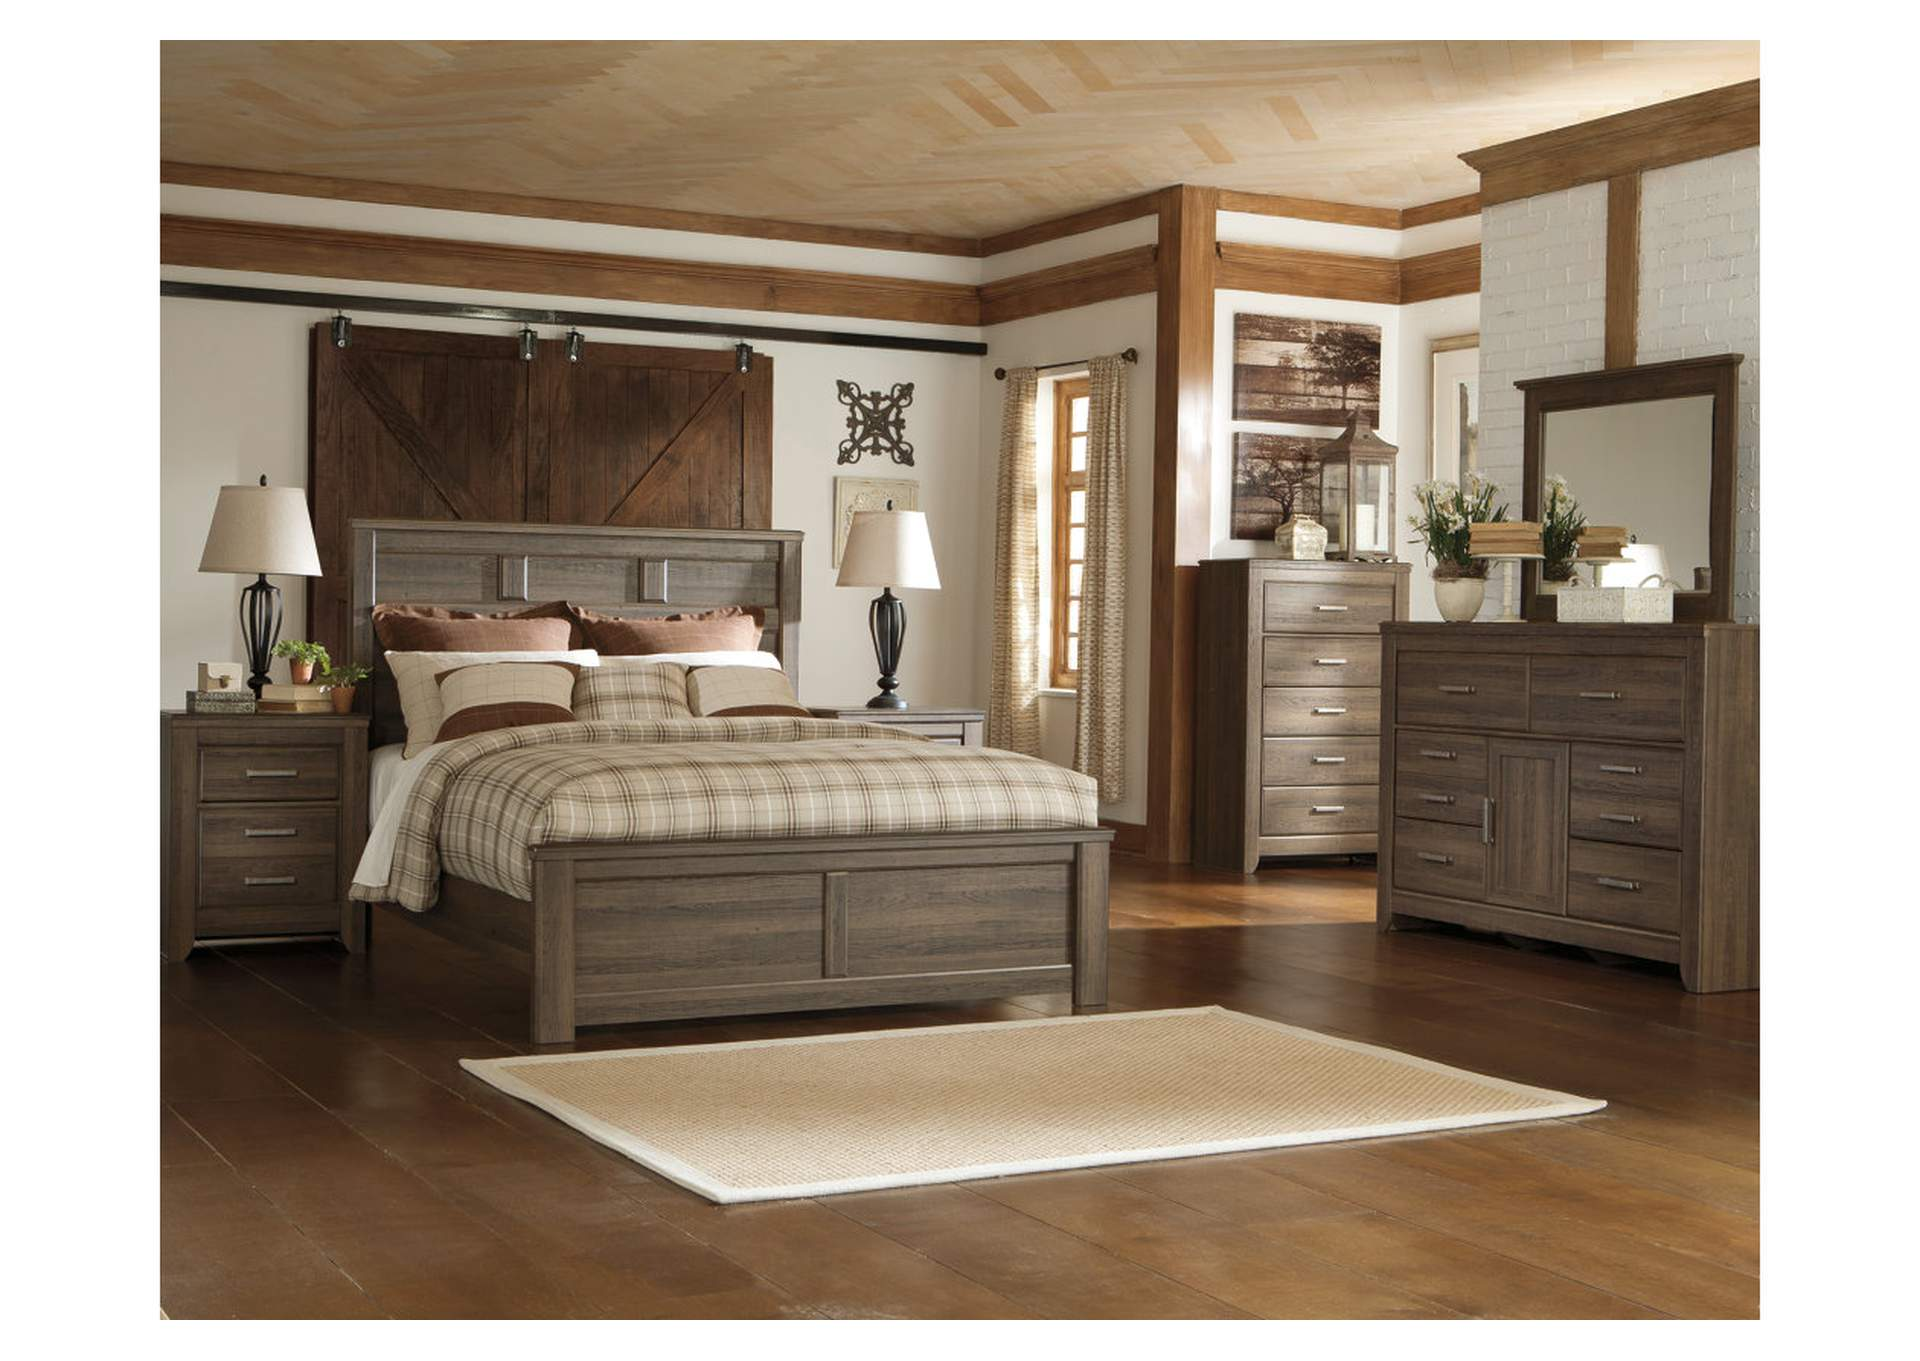 Juararo California King Panel Bed w/Dresser, Mirror, Drawer Chest & Nightstand,Signature Design By Ashley